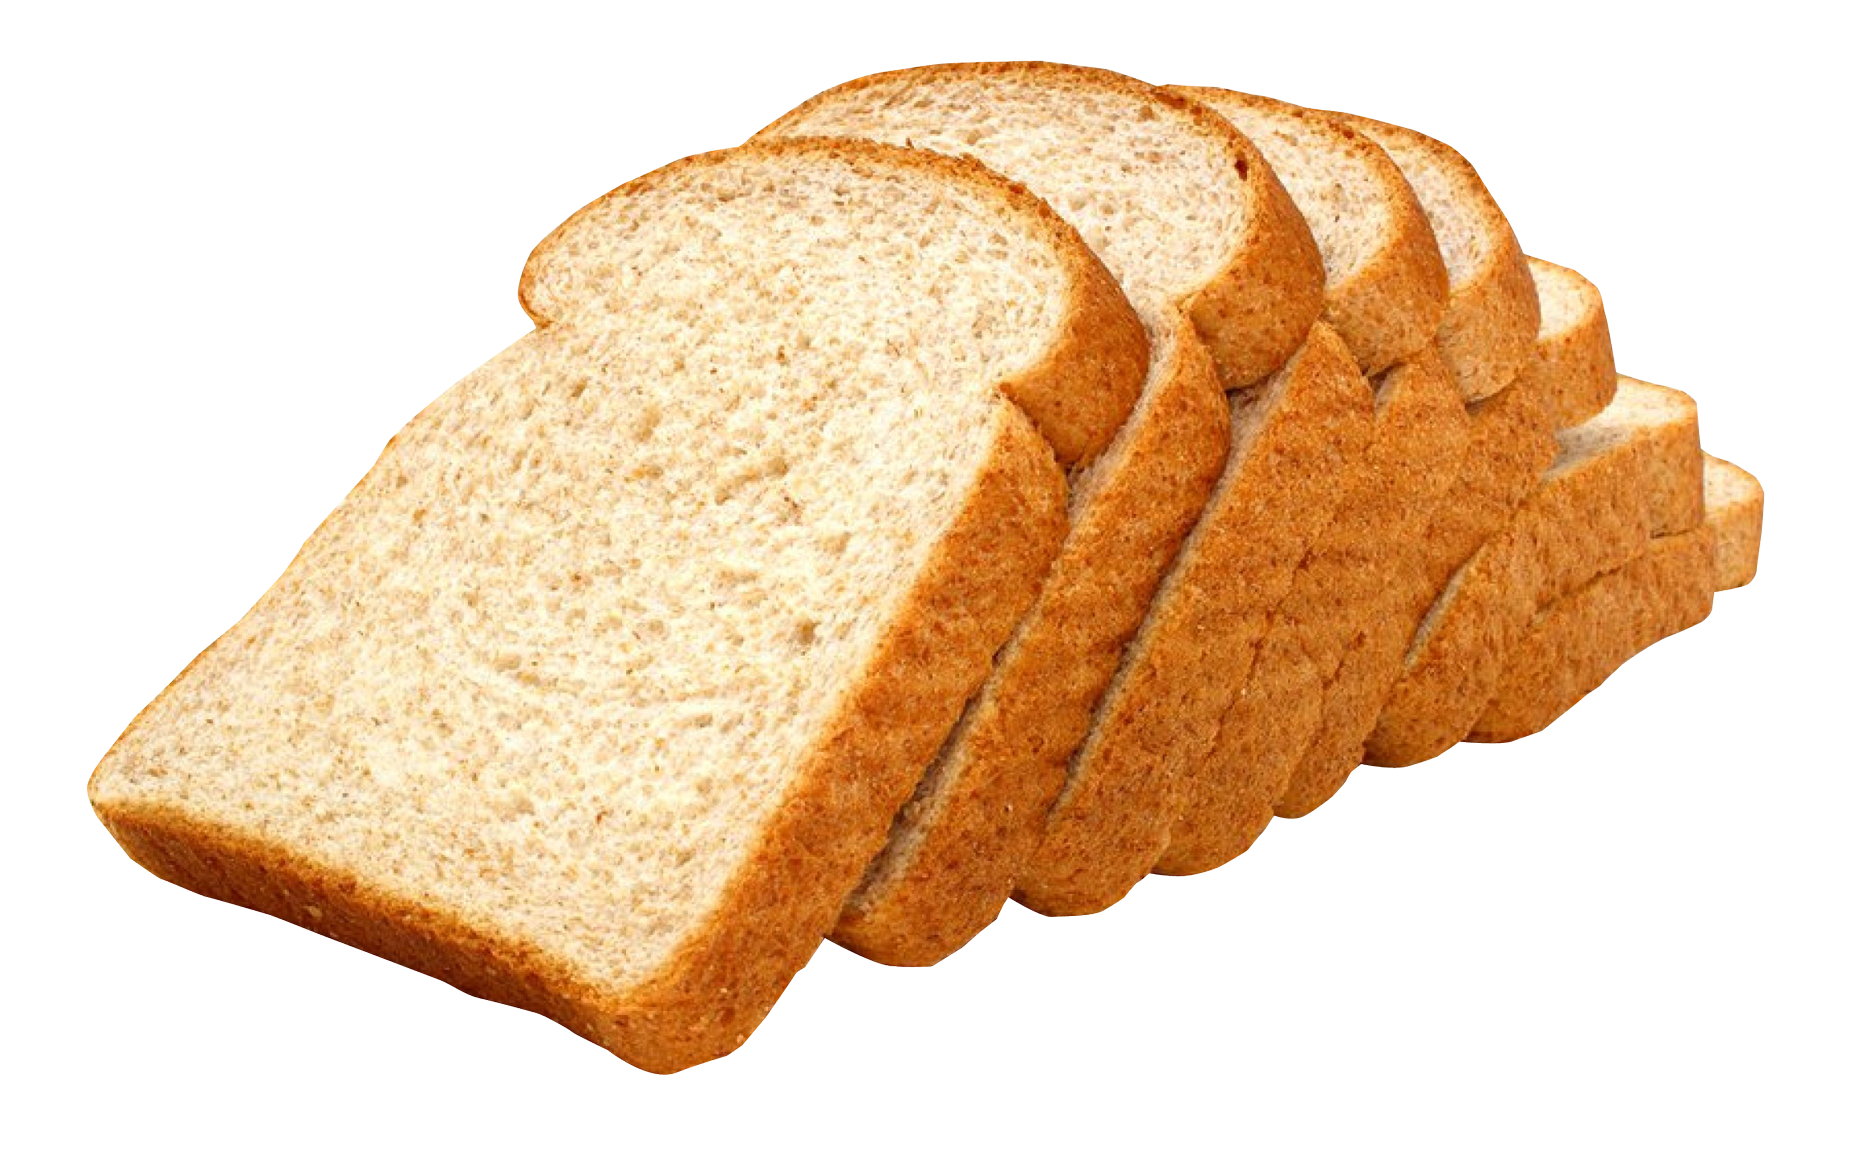 Sliced wheat png image. Clipart bread bread food